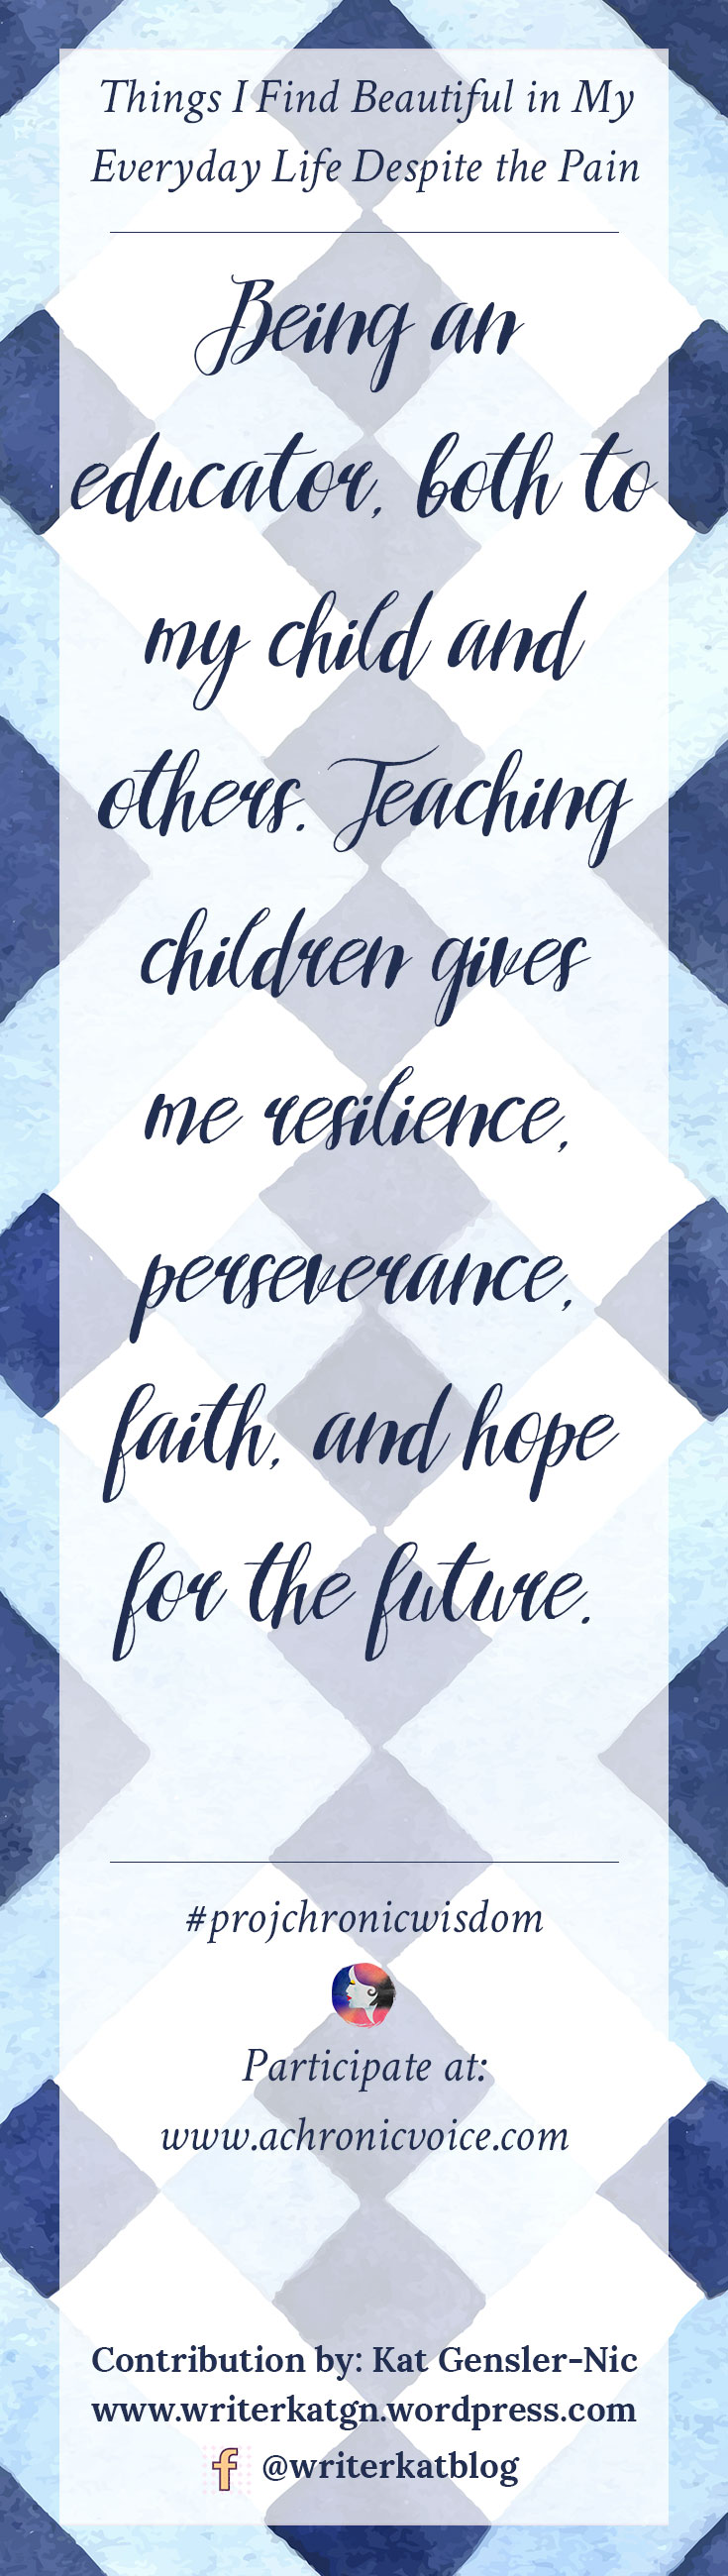 """""""Being an educator, both to my child and others. Teaching children gives me resilience, perseverance, faith, and hope for the future."""" - Kat Gensler-Nic 